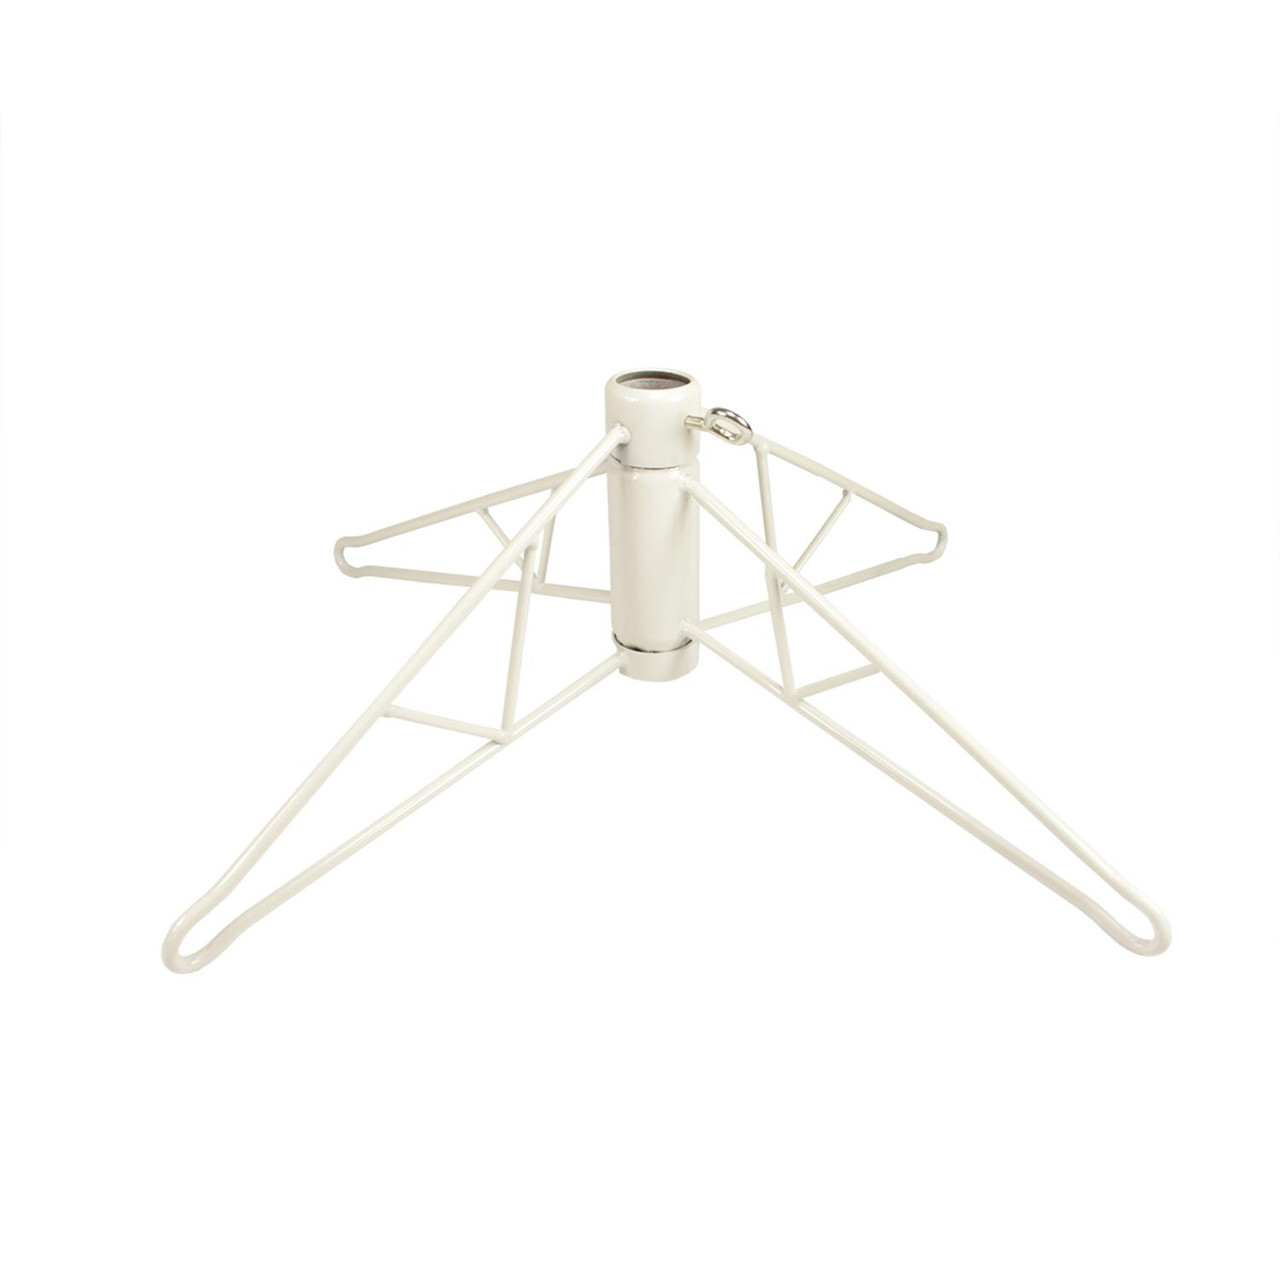 Artificial Christmas Tree Stand.White Metal Christmas Tree Stand For 12 15 Artificial Trees 32638288